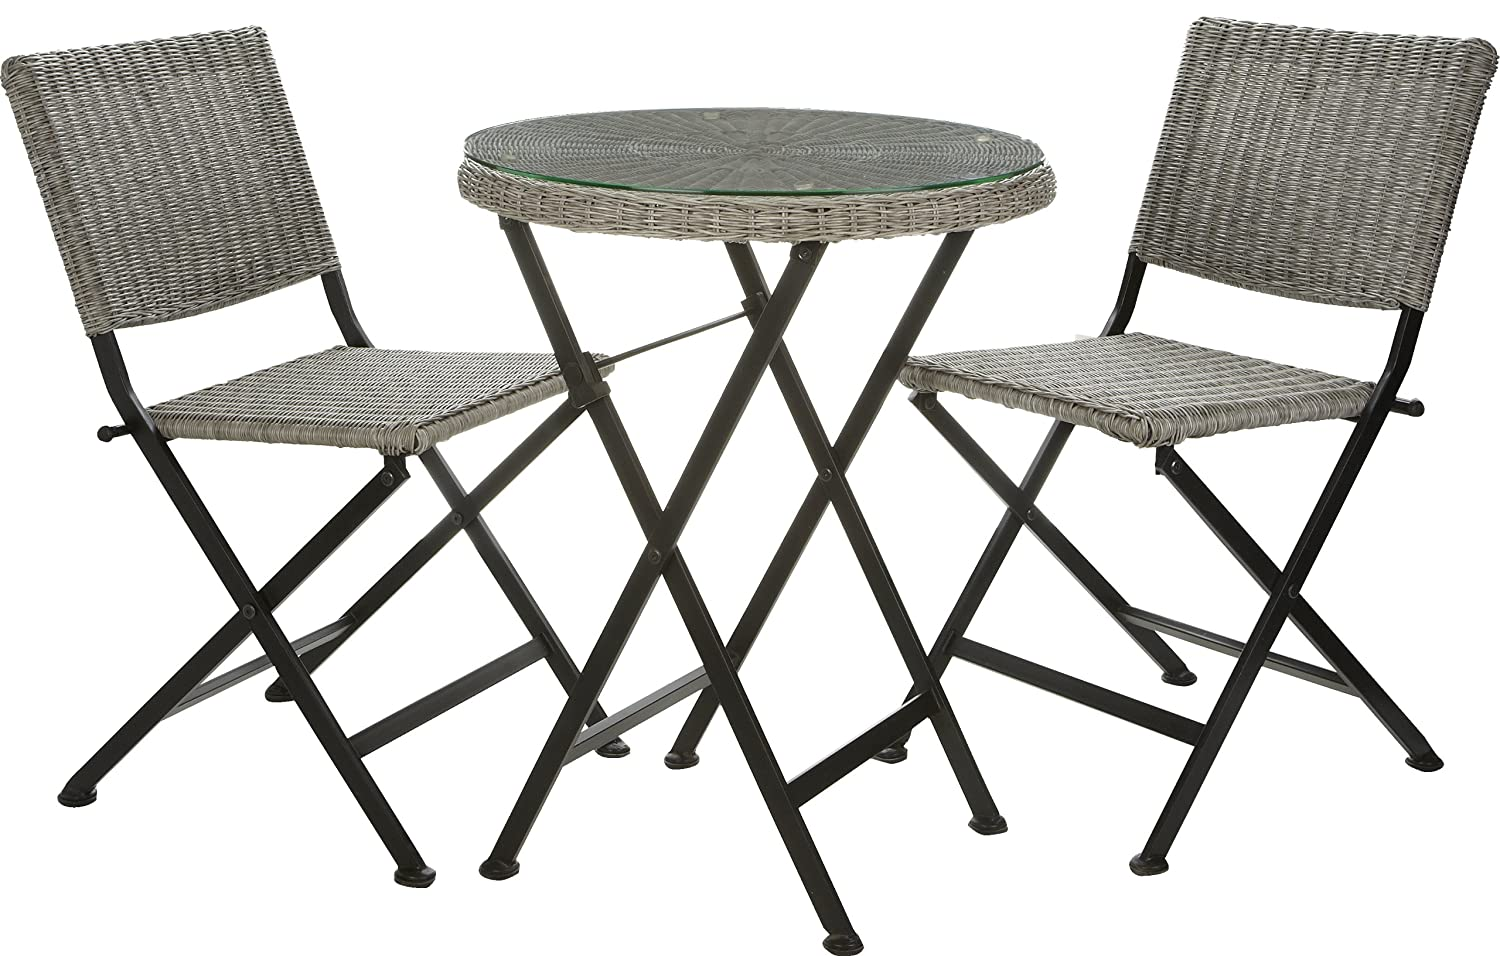 gartenfreude bistro set balkonm bel polyrattan grau mit glasplatte 60 cm online bestellen. Black Bedroom Furniture Sets. Home Design Ideas